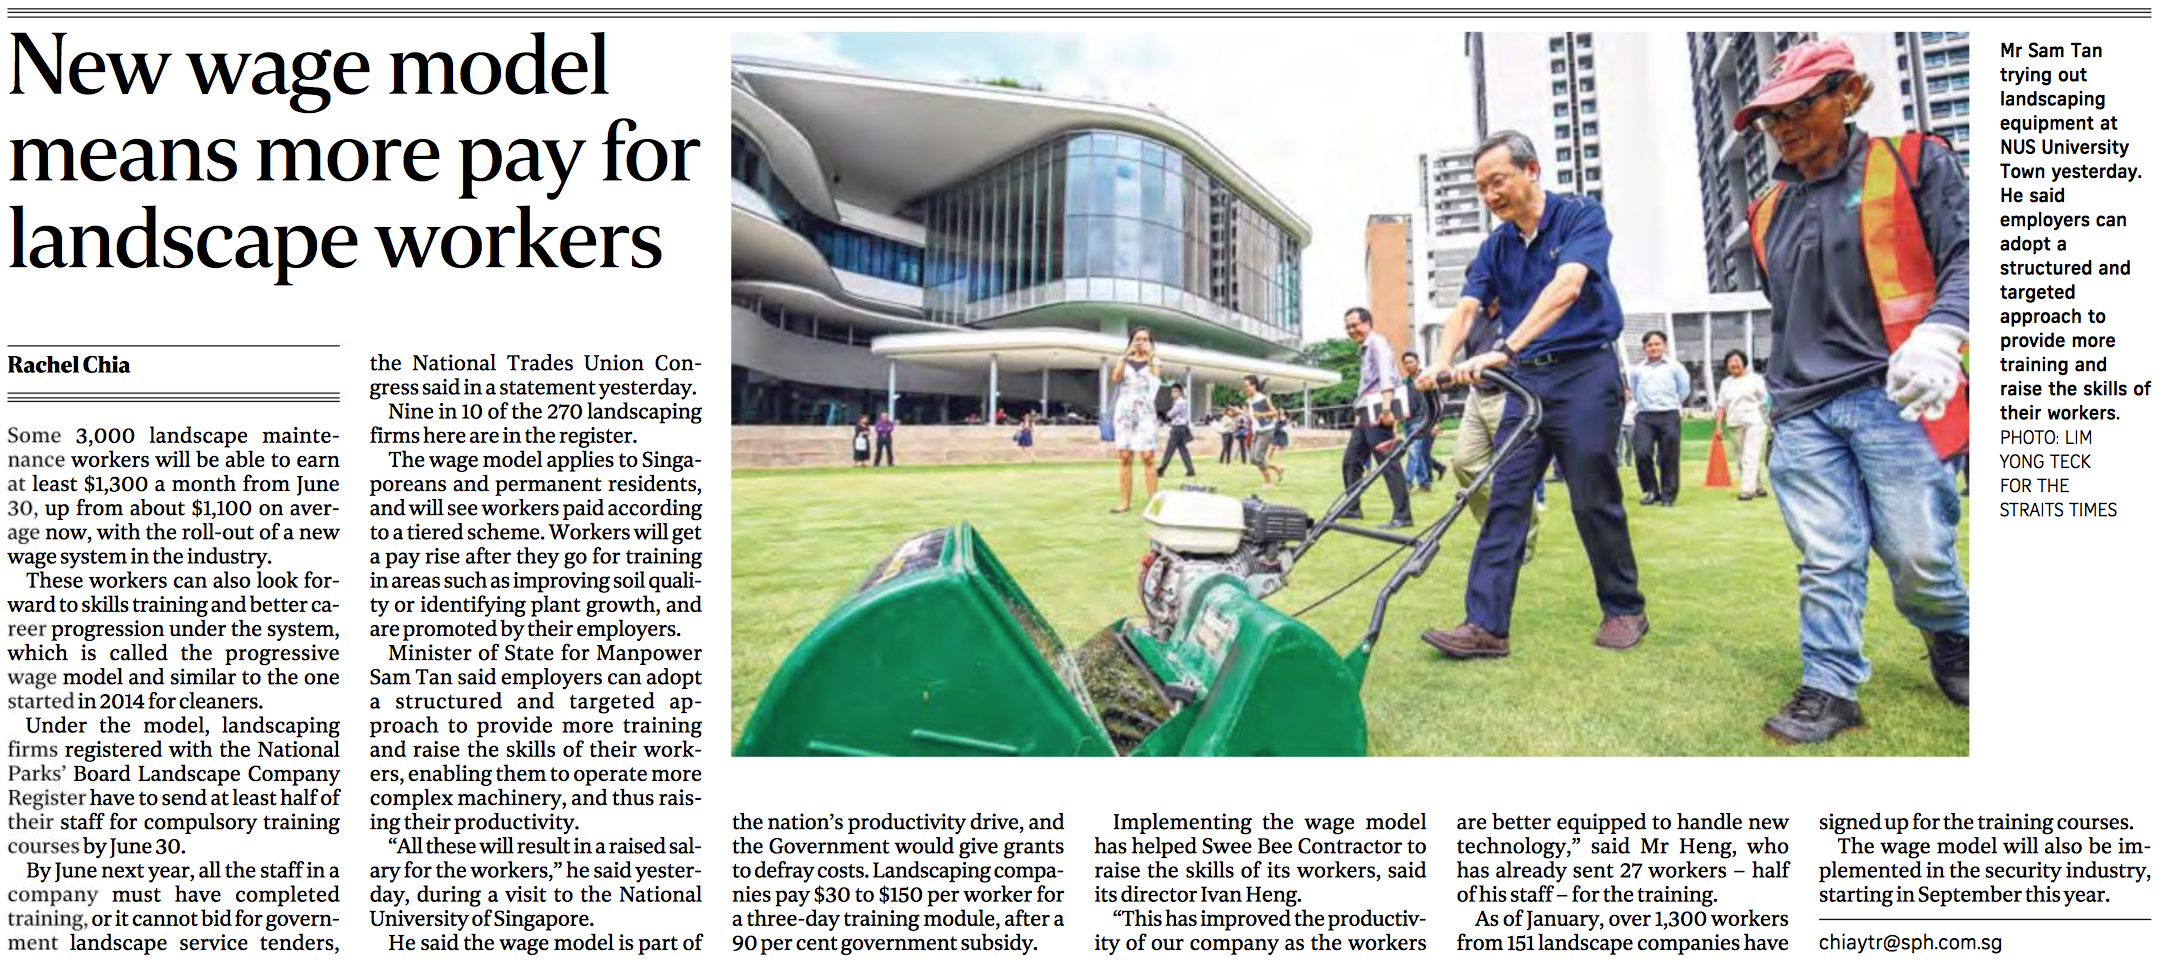 Landscaping industry feature for The Straits Times (www.straitstimes.com)